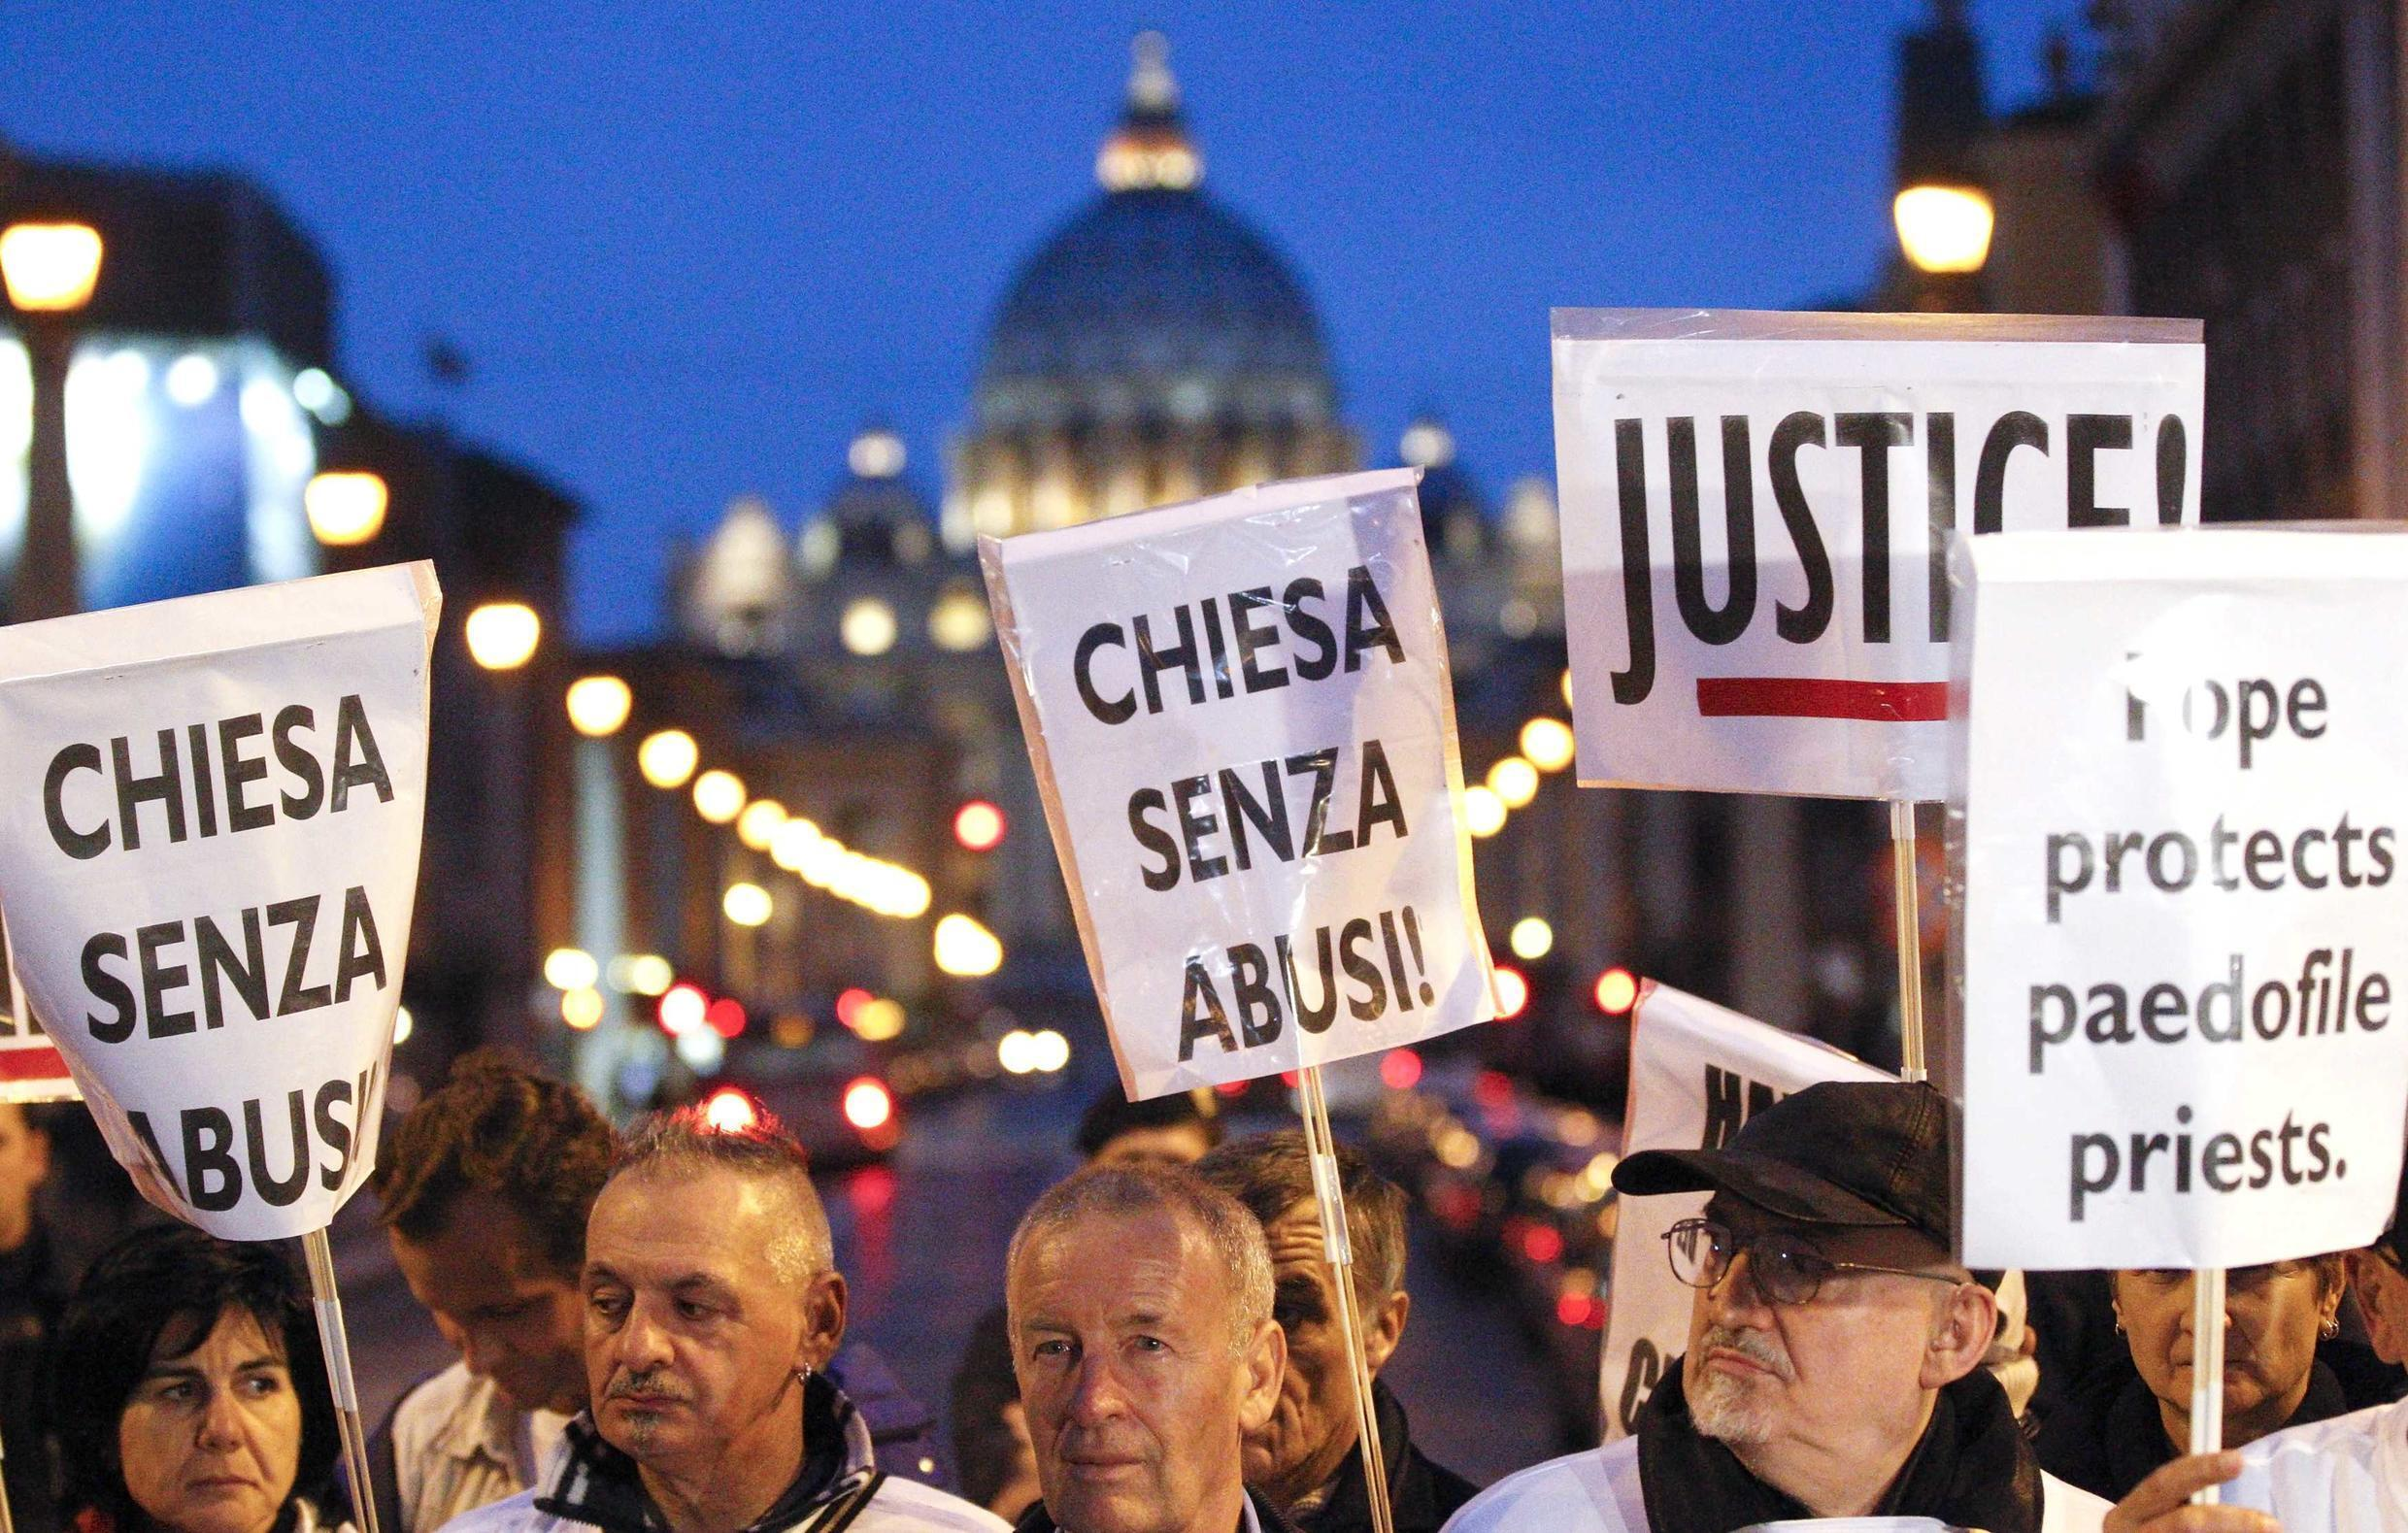 Protest against paedophiliac priests at the Vatican, 31 October 2010